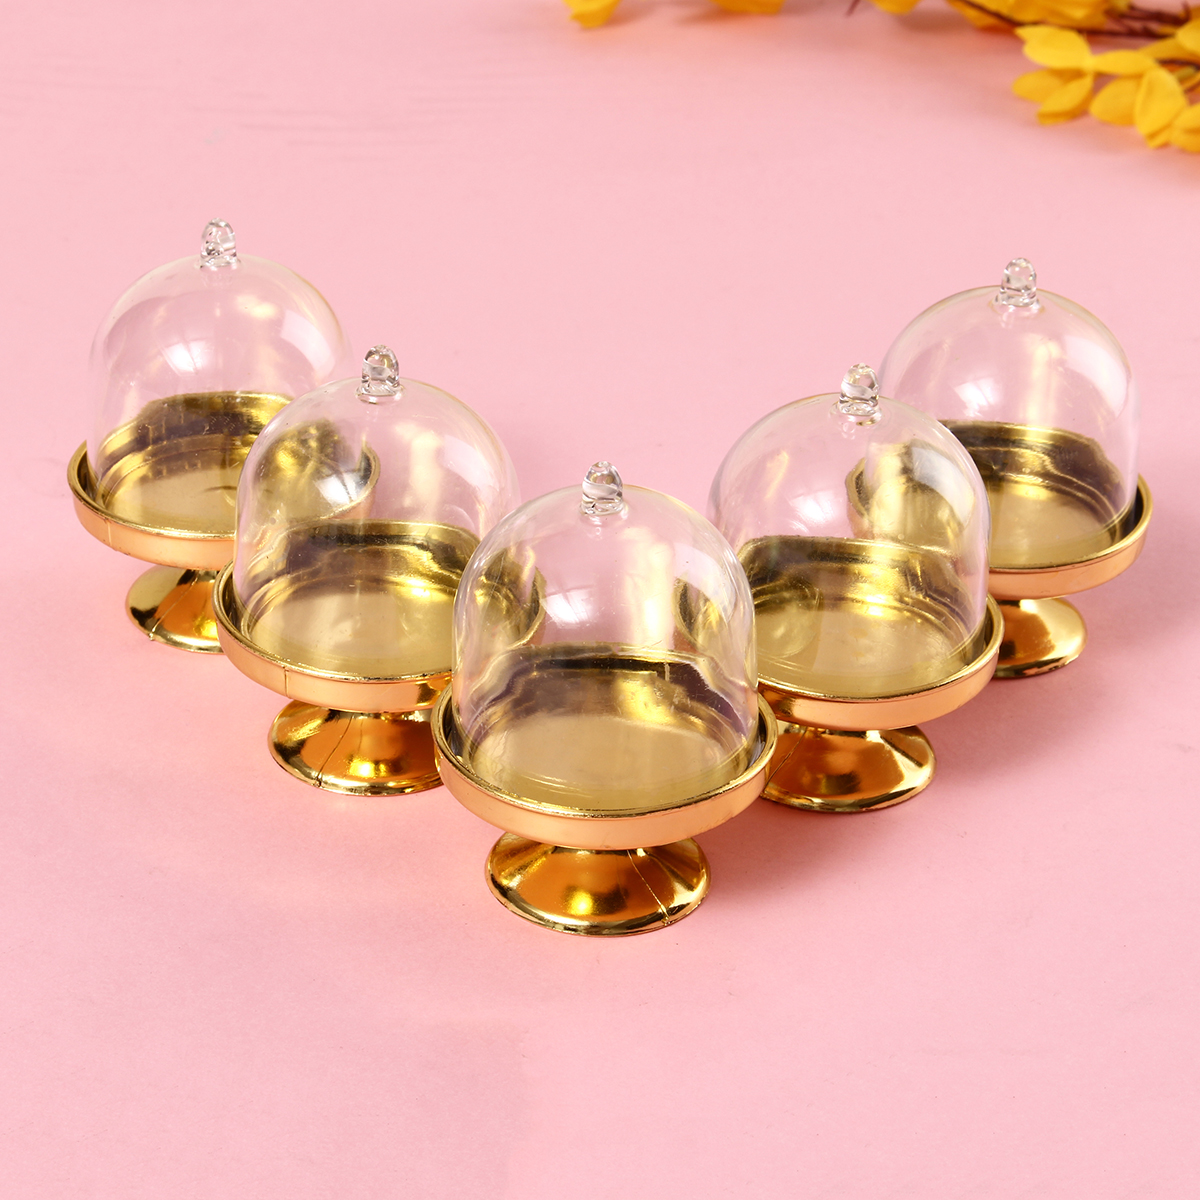 12 Pcs Mini Cake Stand Cupcake Box Plastic Candy Box Holder With Cover Kitchen Storage Container